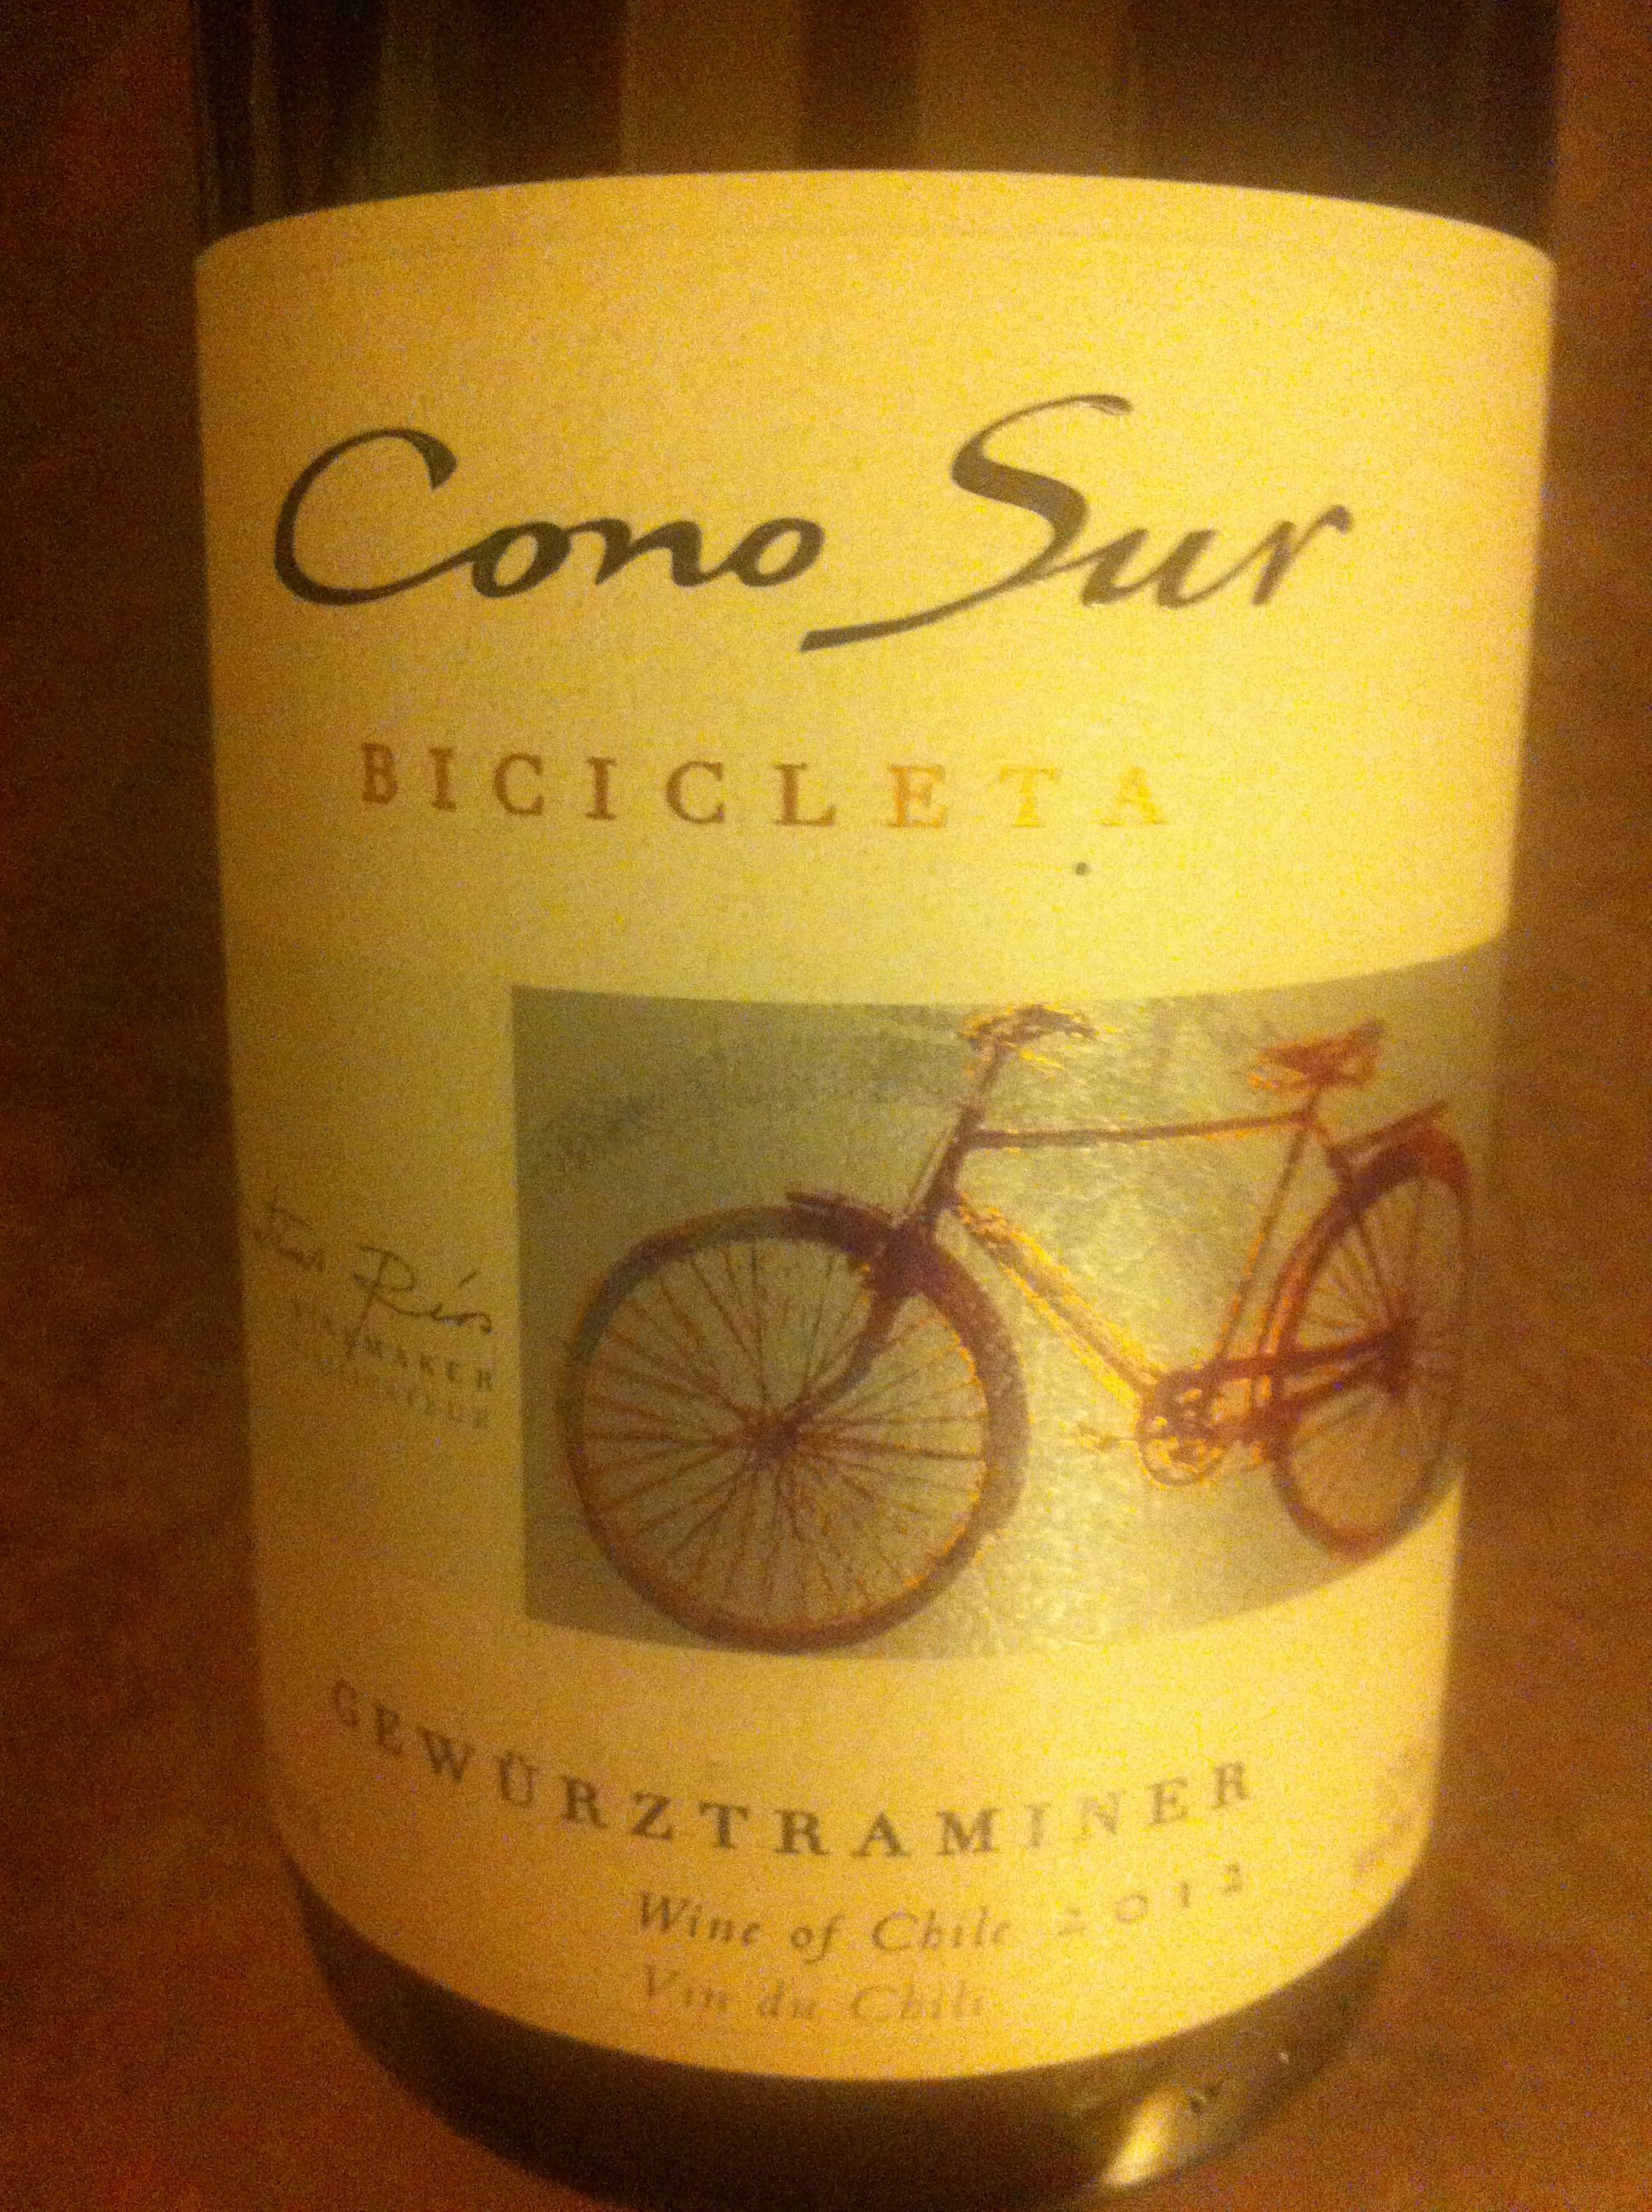 I like Gewürztraminer, this one wasn't my favorite but I also had it after reds: cono sur gewurztraminer, chile